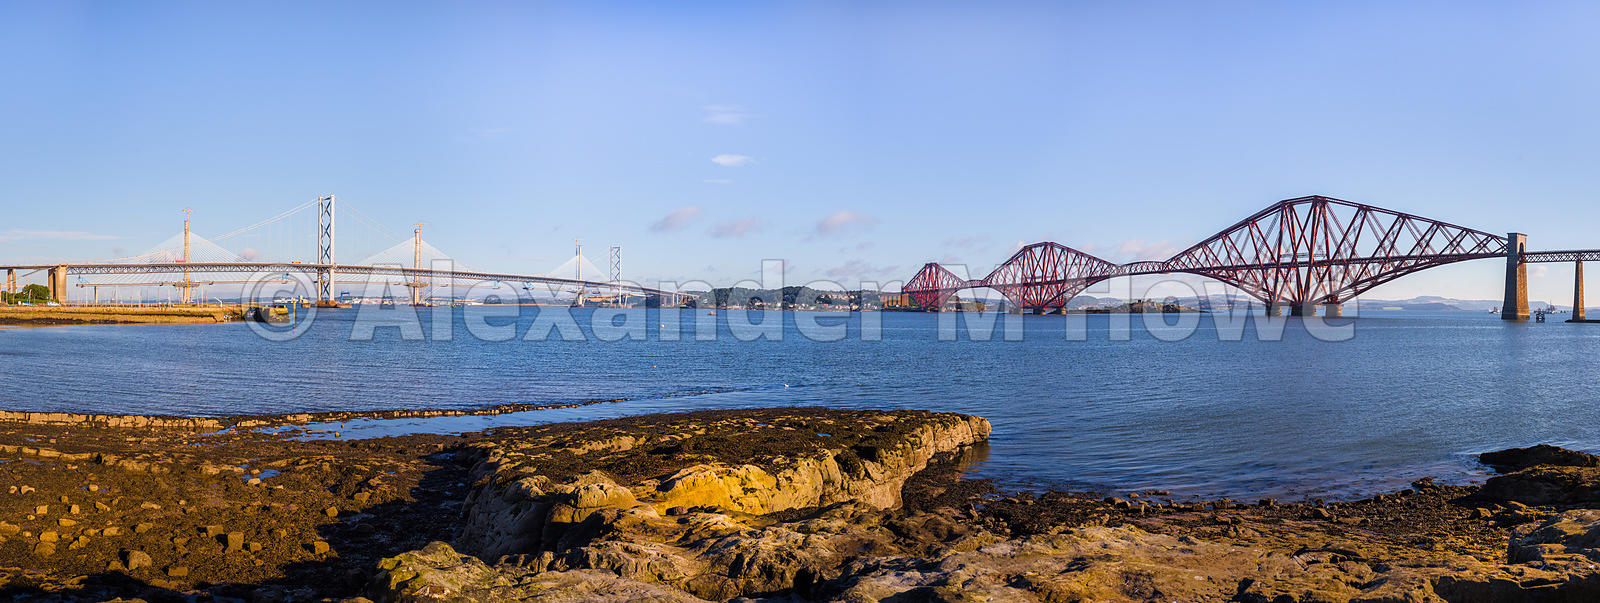 The Forth Bridge and the Forth Road Bridge against a blue sky